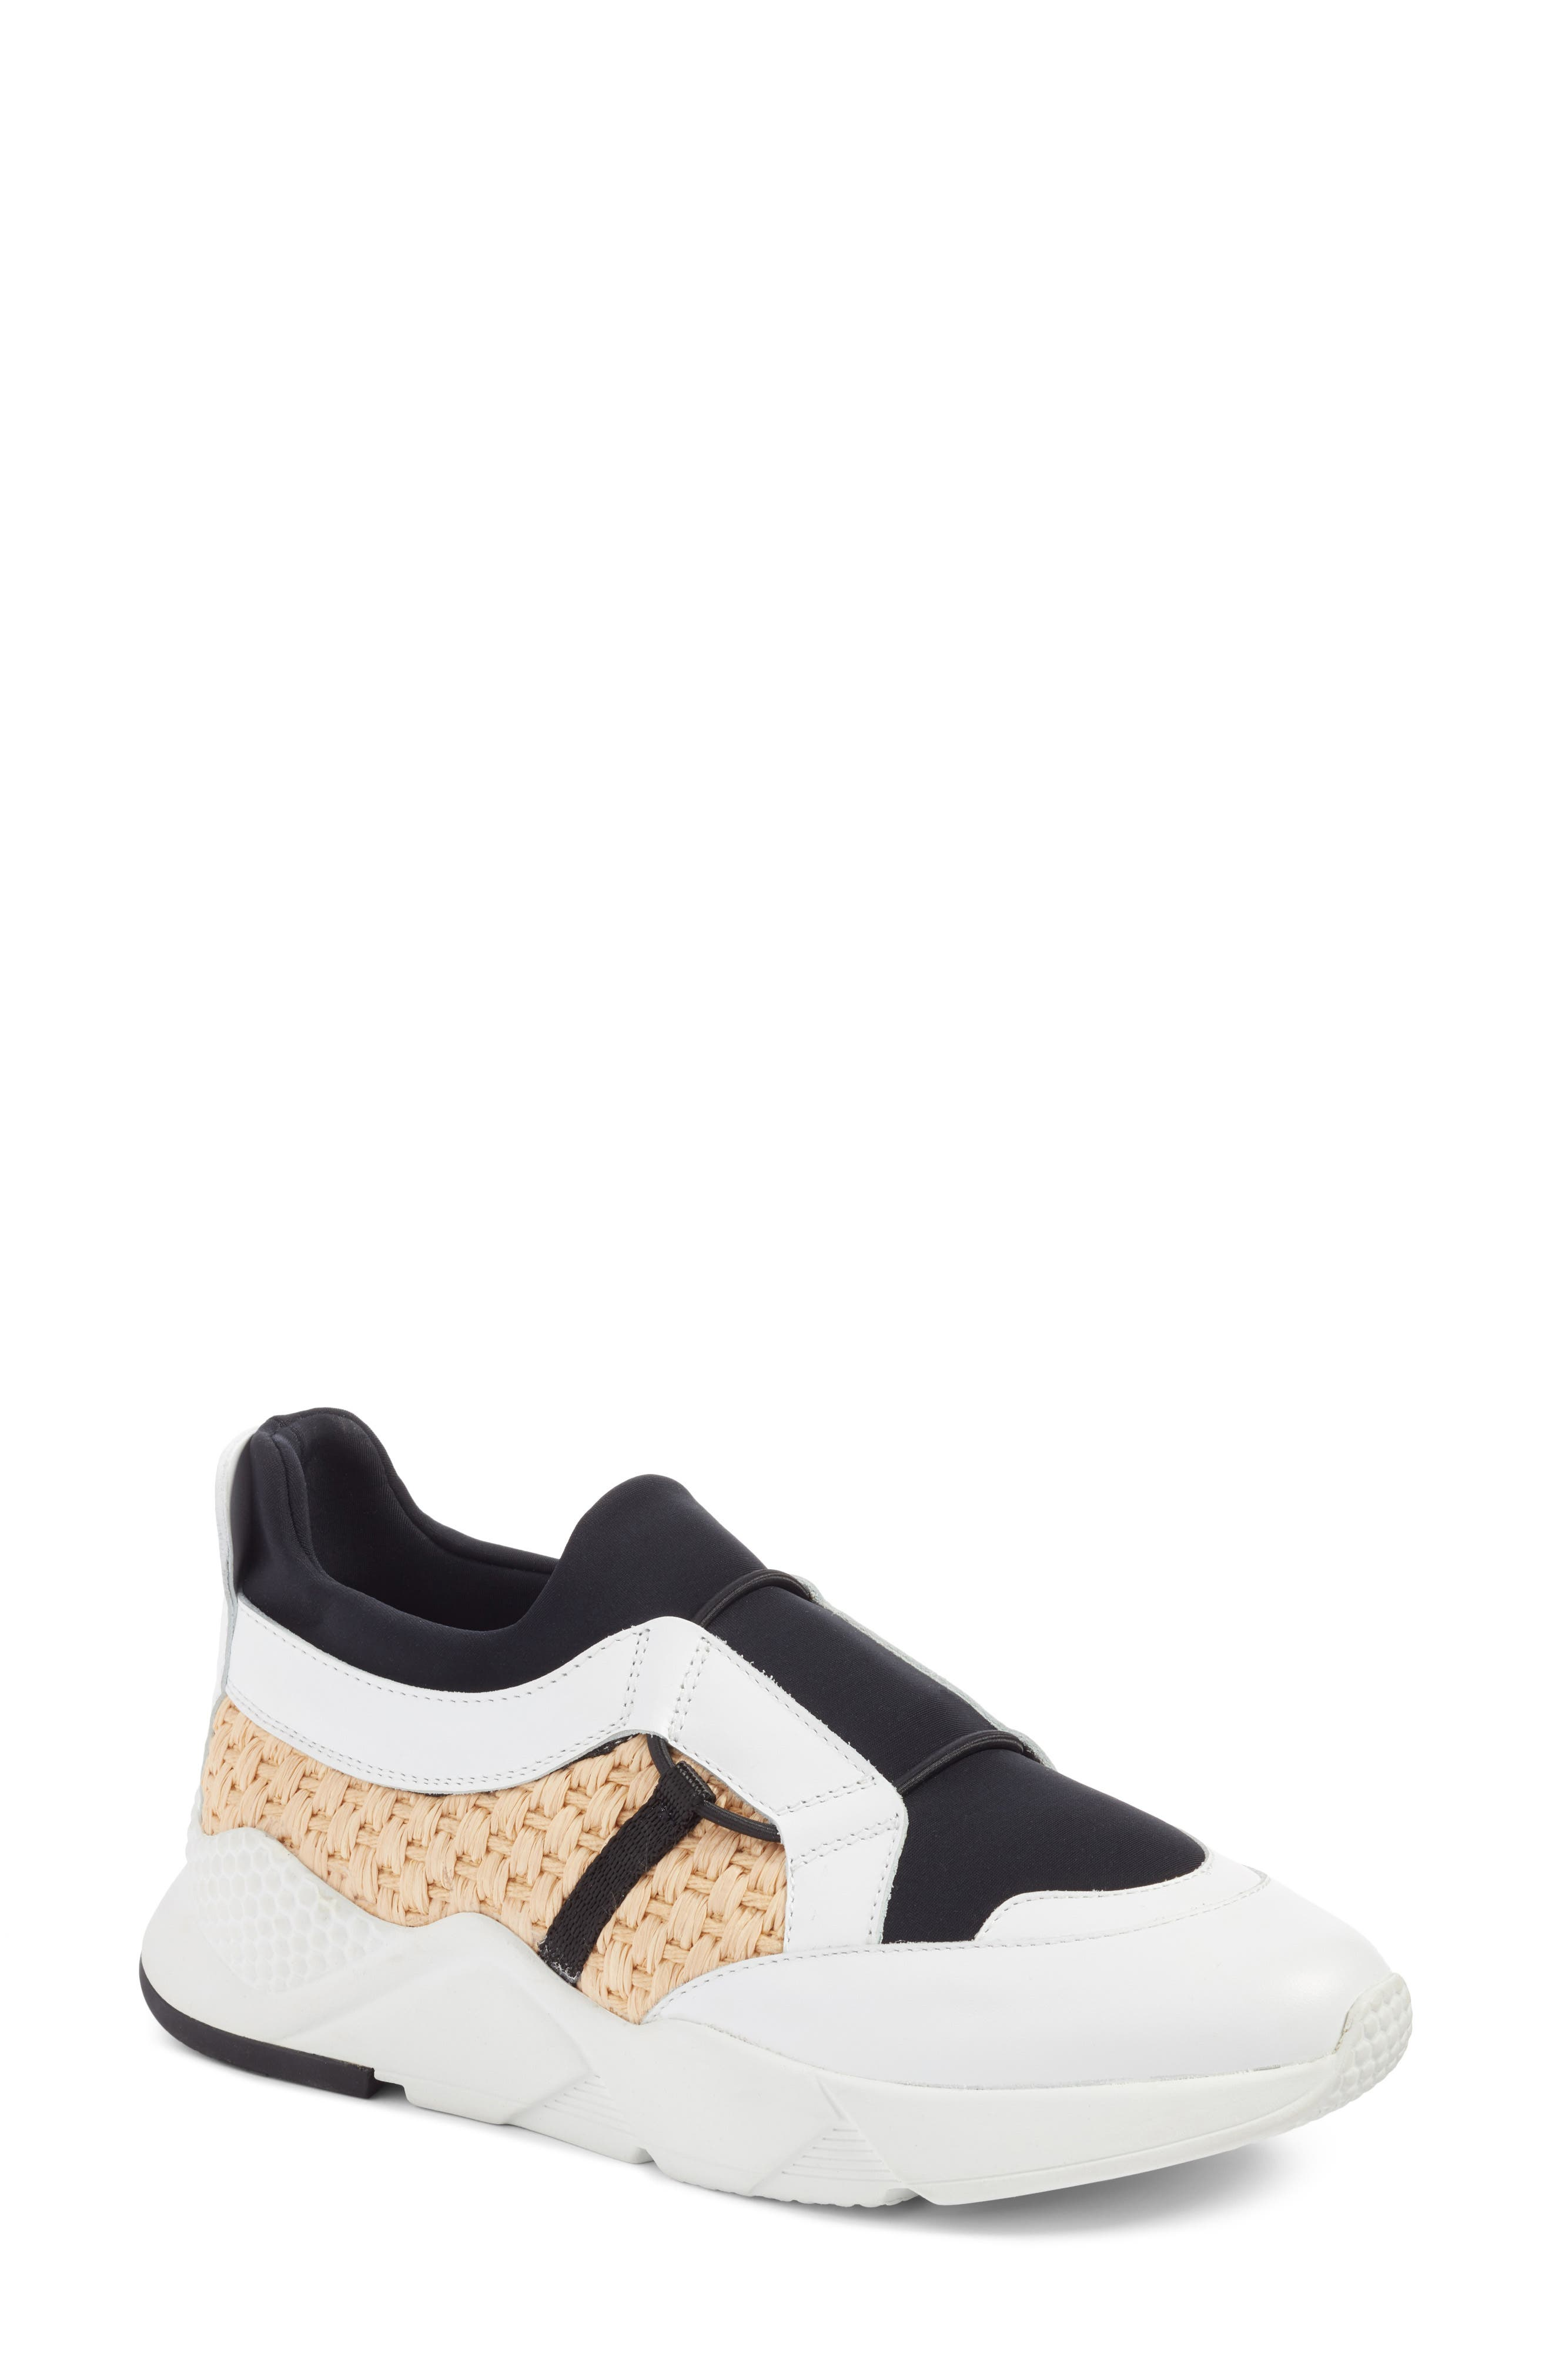 Main Image - Robert Clergerie Salvy Woven Sneaker (Women)